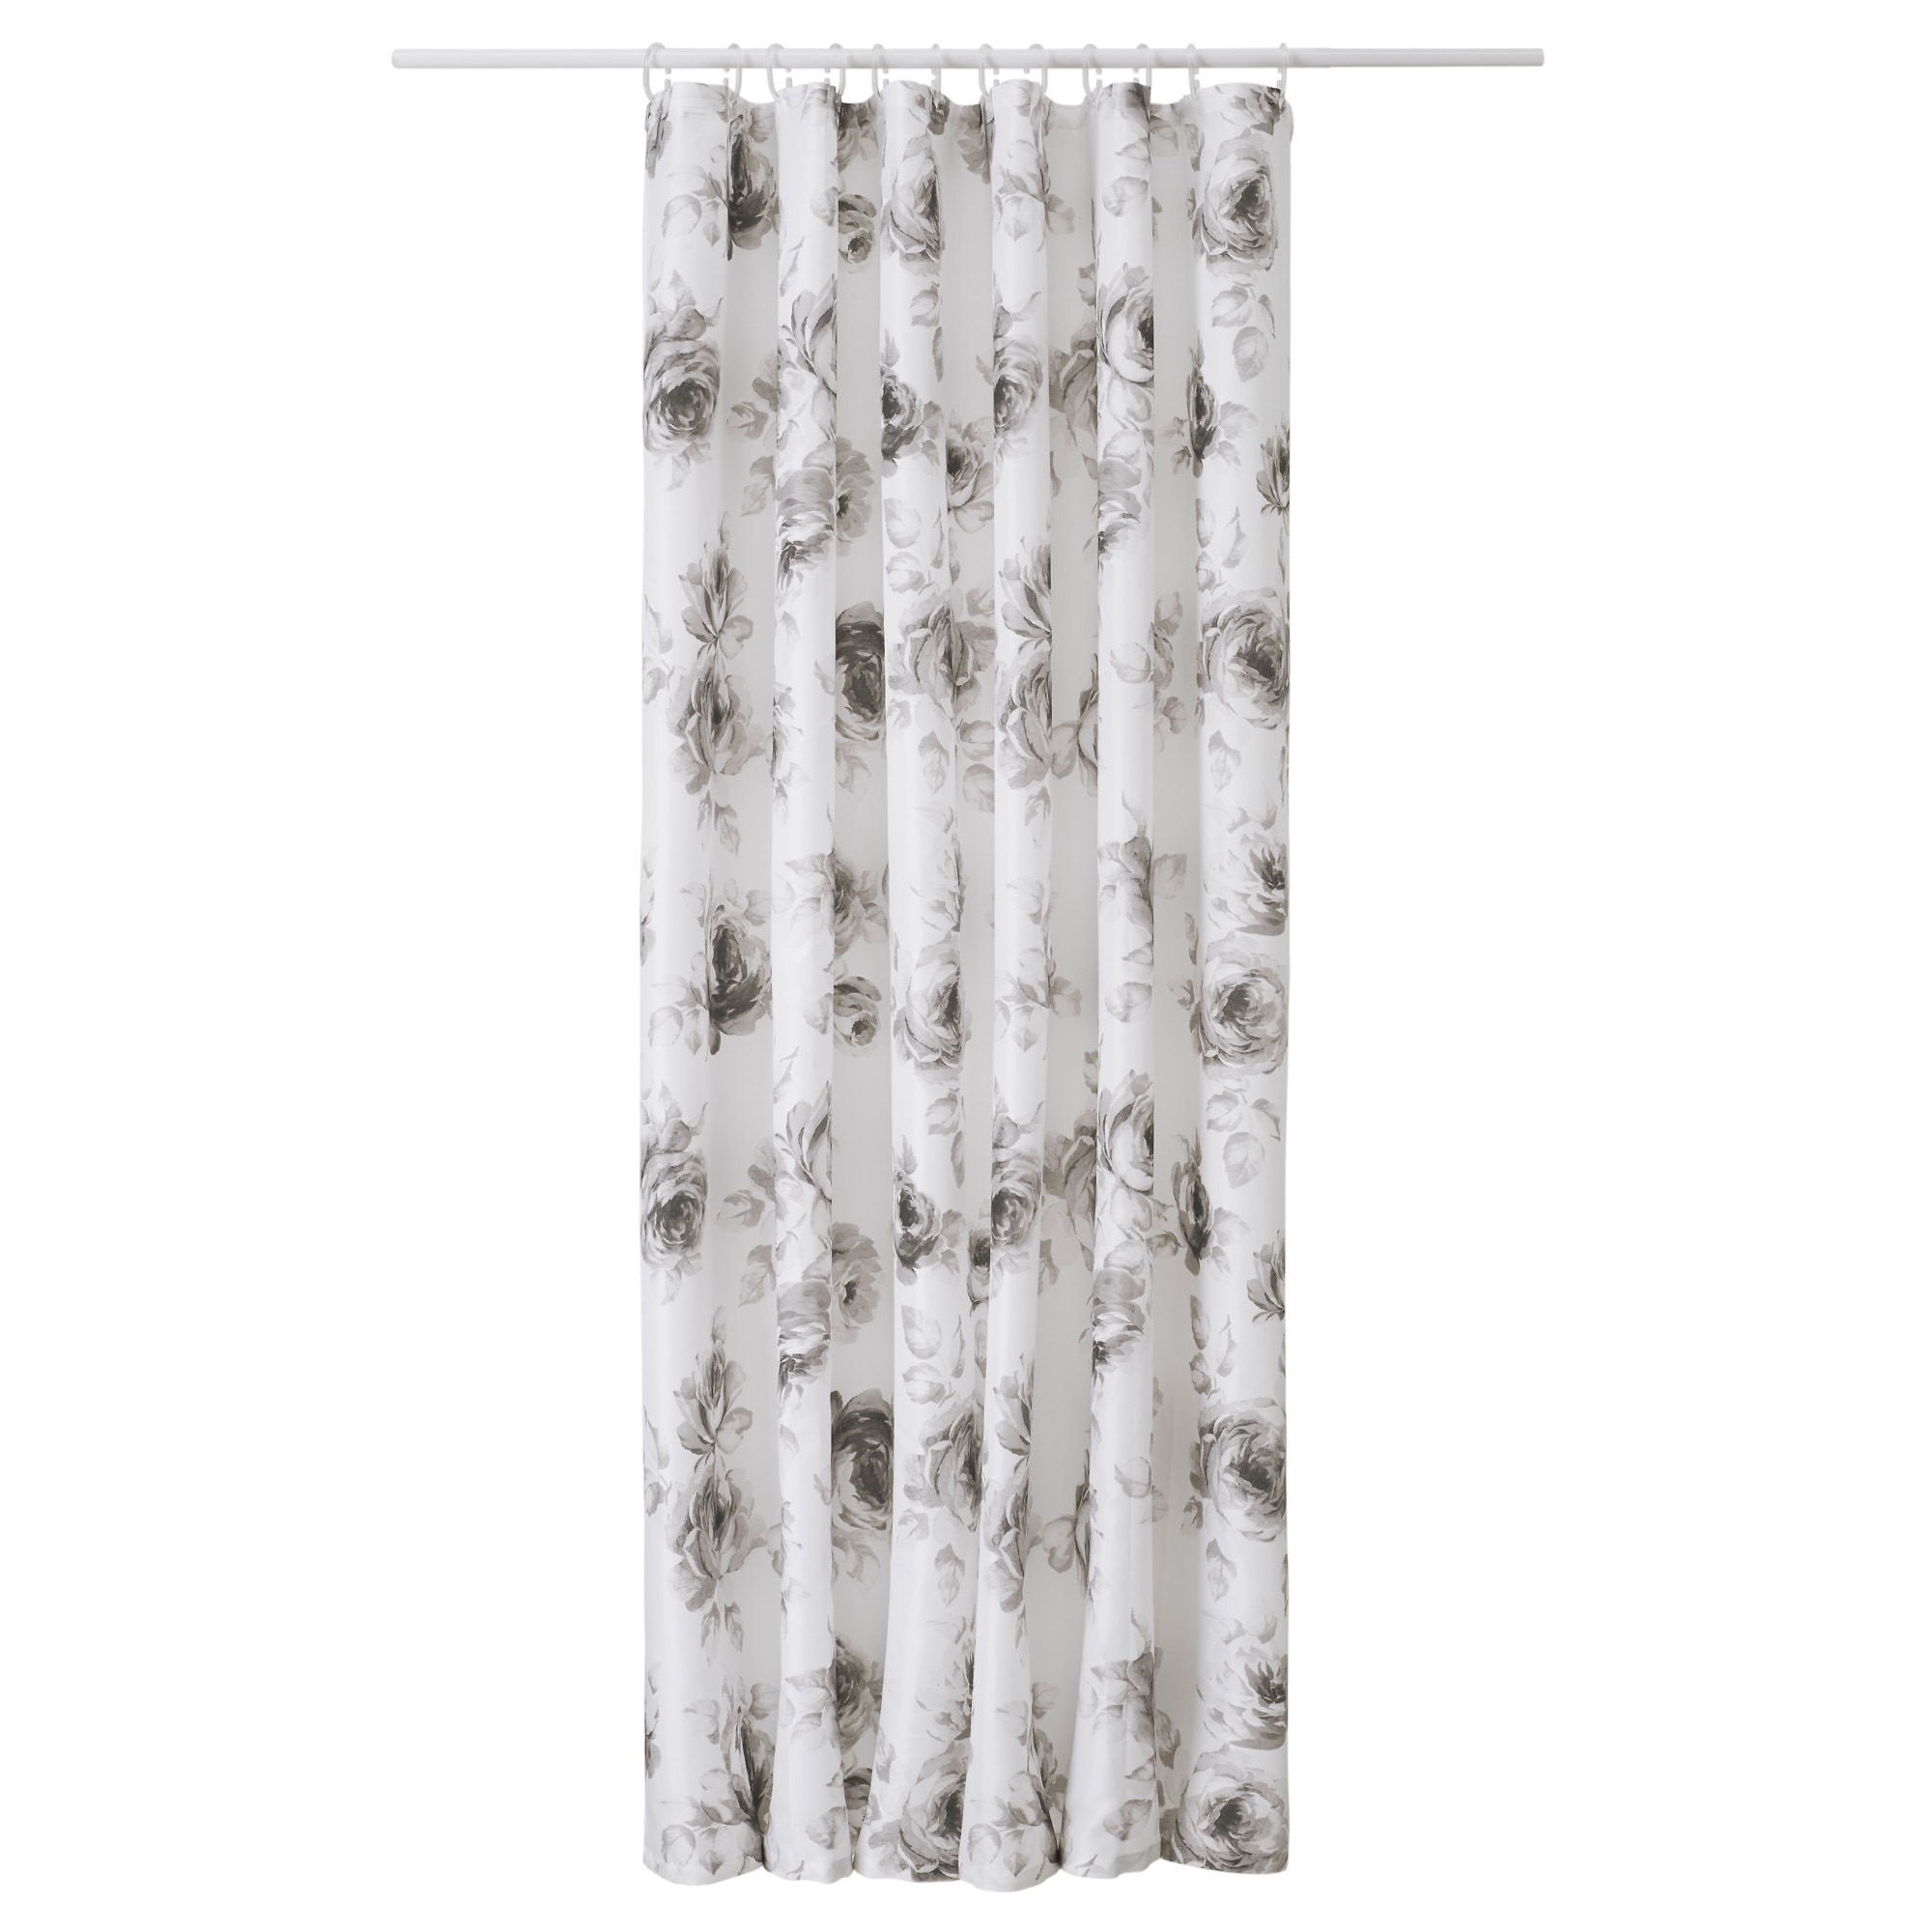 AGGERSUND Shower Curtain Gray White